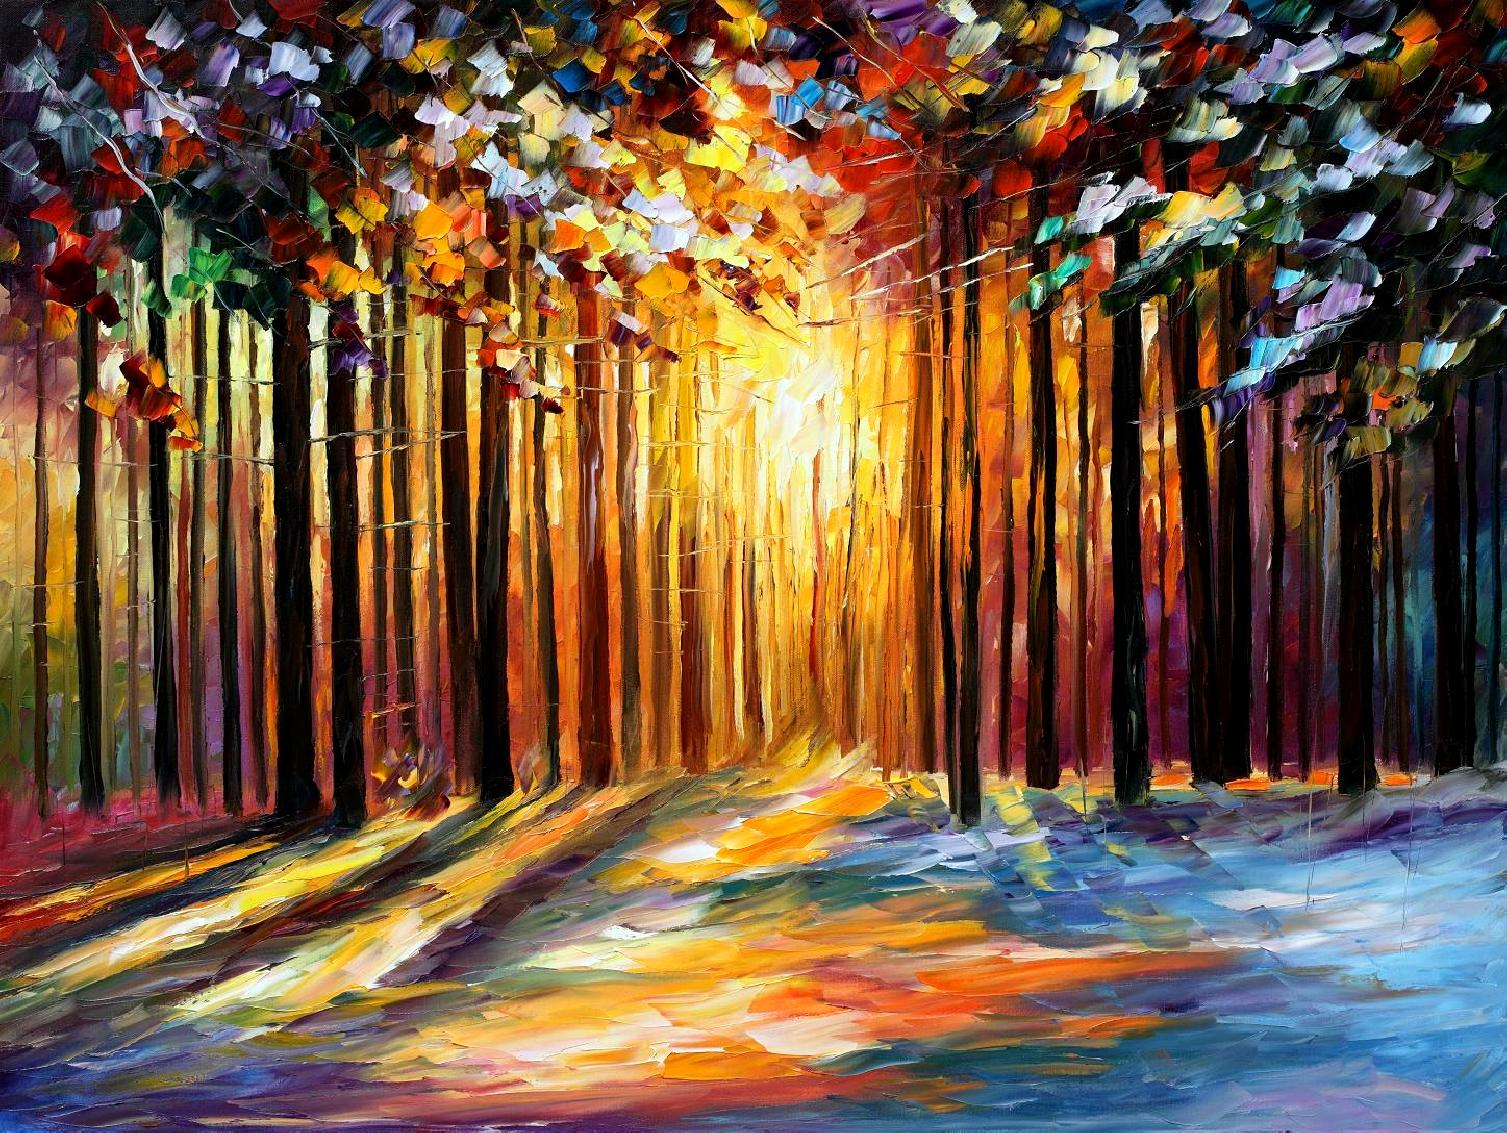 SUN OF JANUARY PALETTE KNIFE Oil Painting On Canvas By Leonid Afremov